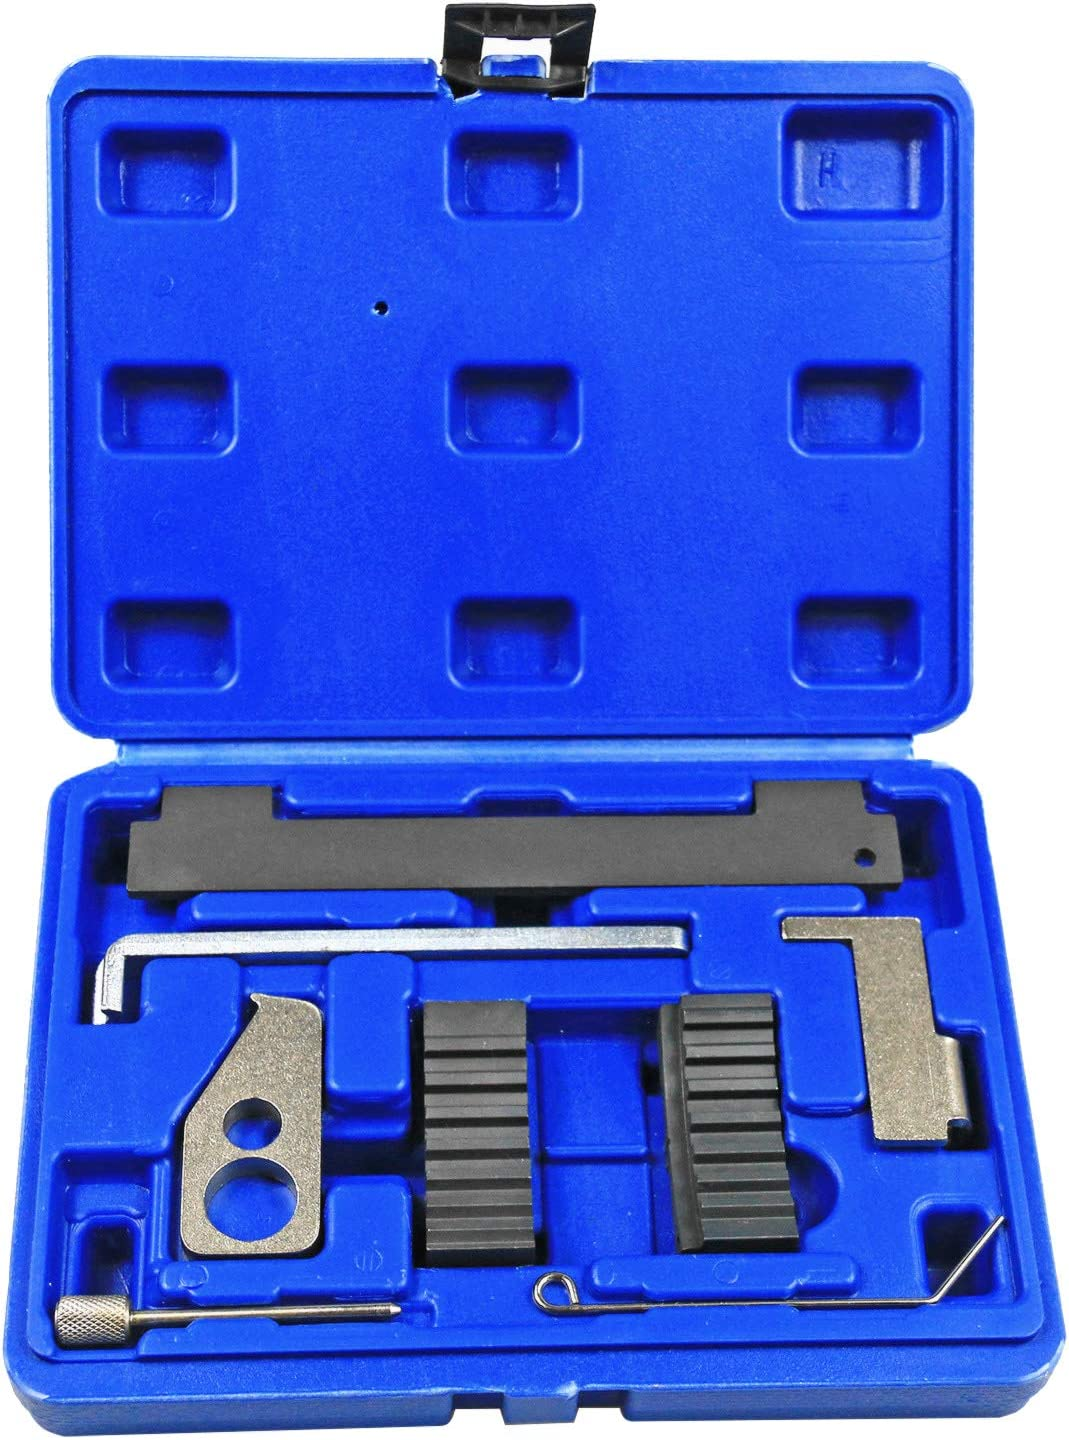 Bests Q Engine Camshaft Tensioning Locking Alignment Timing Tool Kit for Chevrolet Alfa Romeo 16V 1.6 1.8